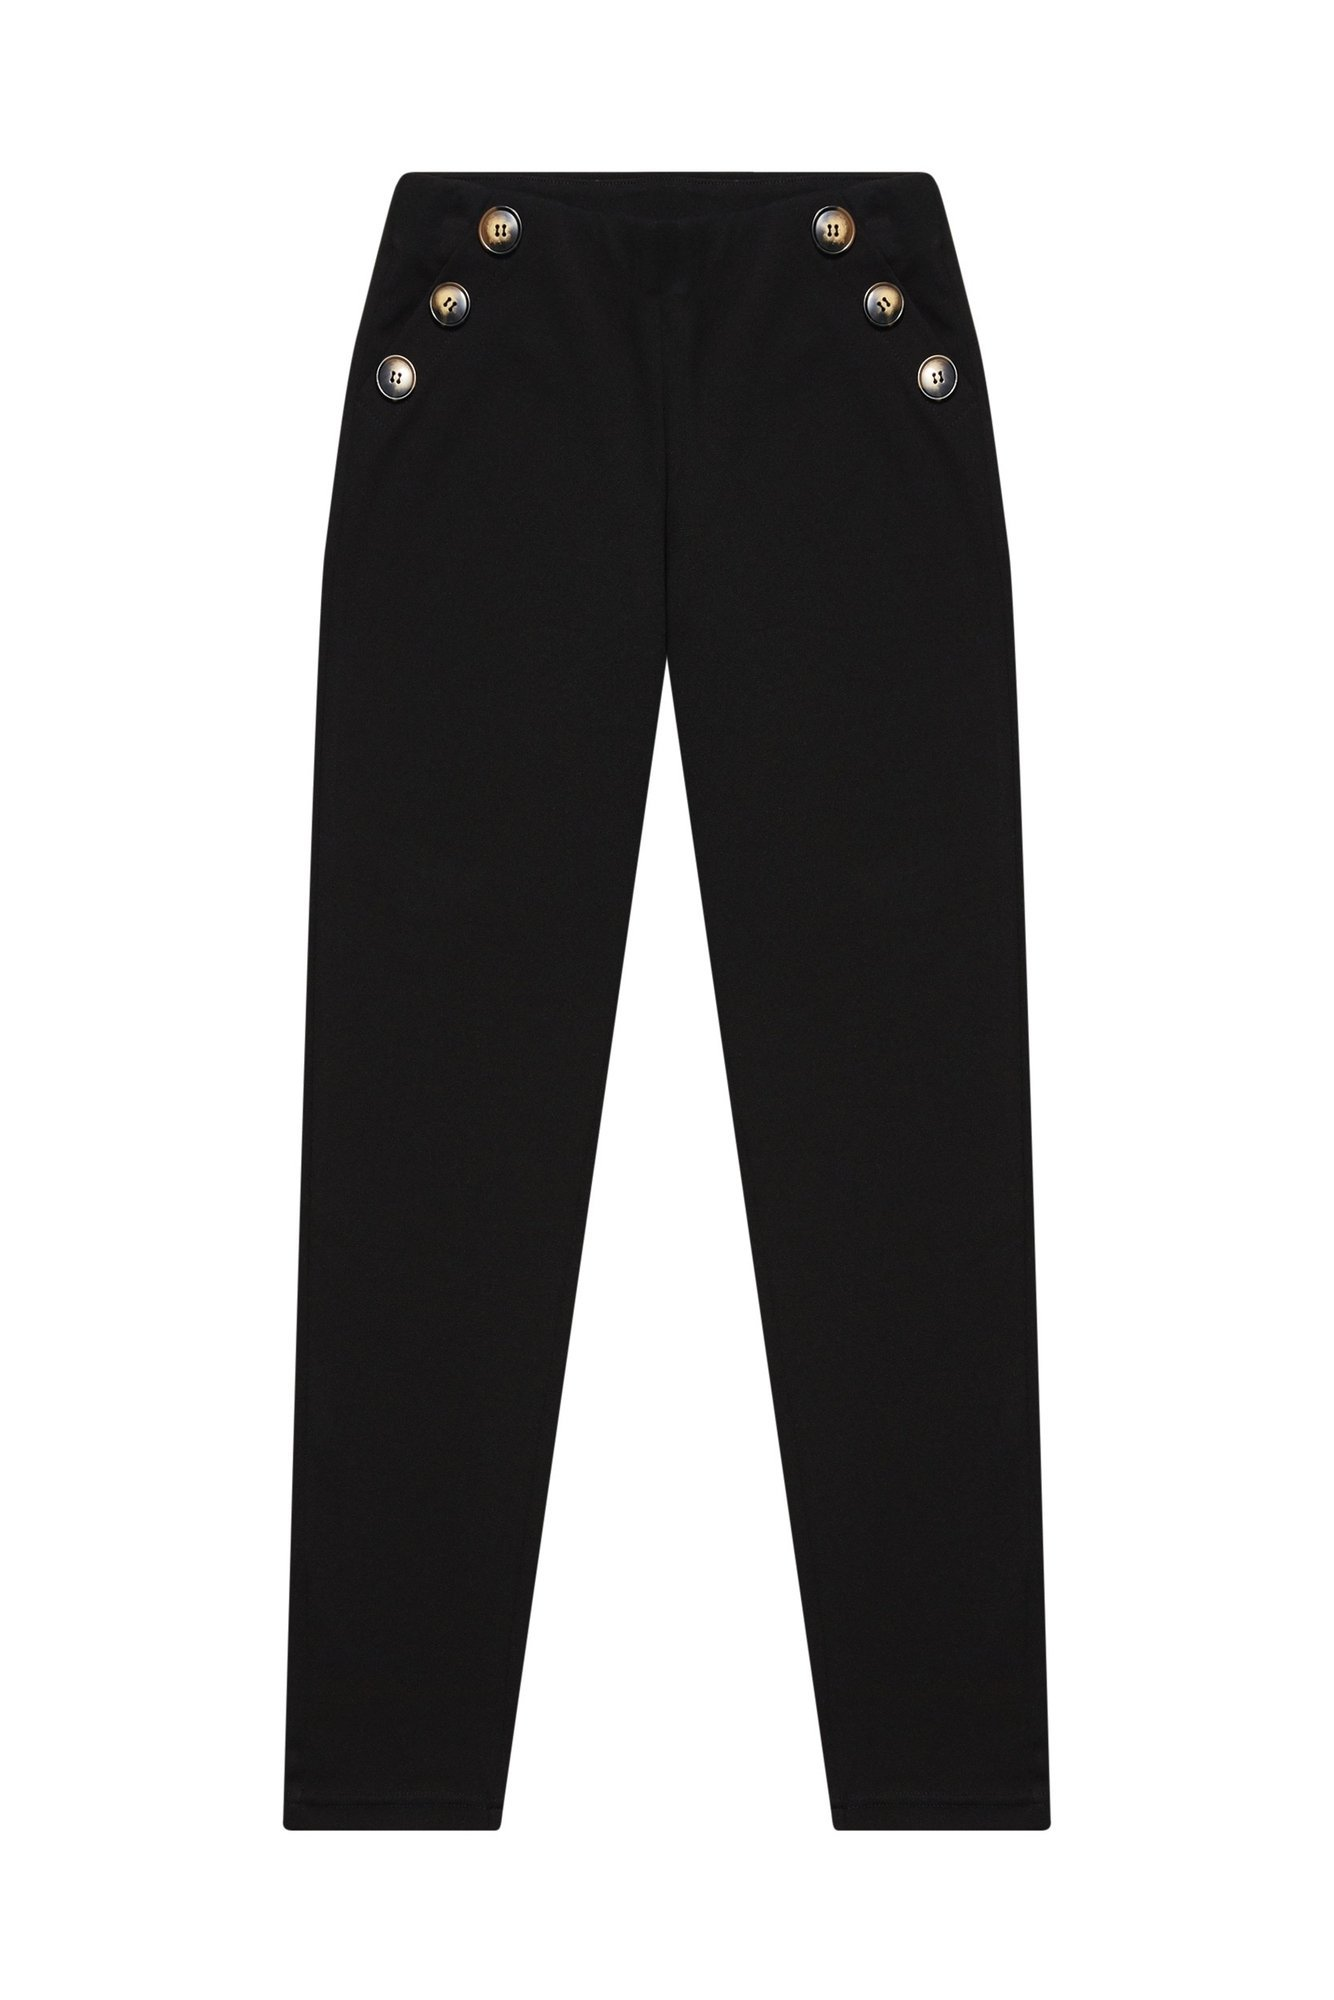 Moodo black trousers